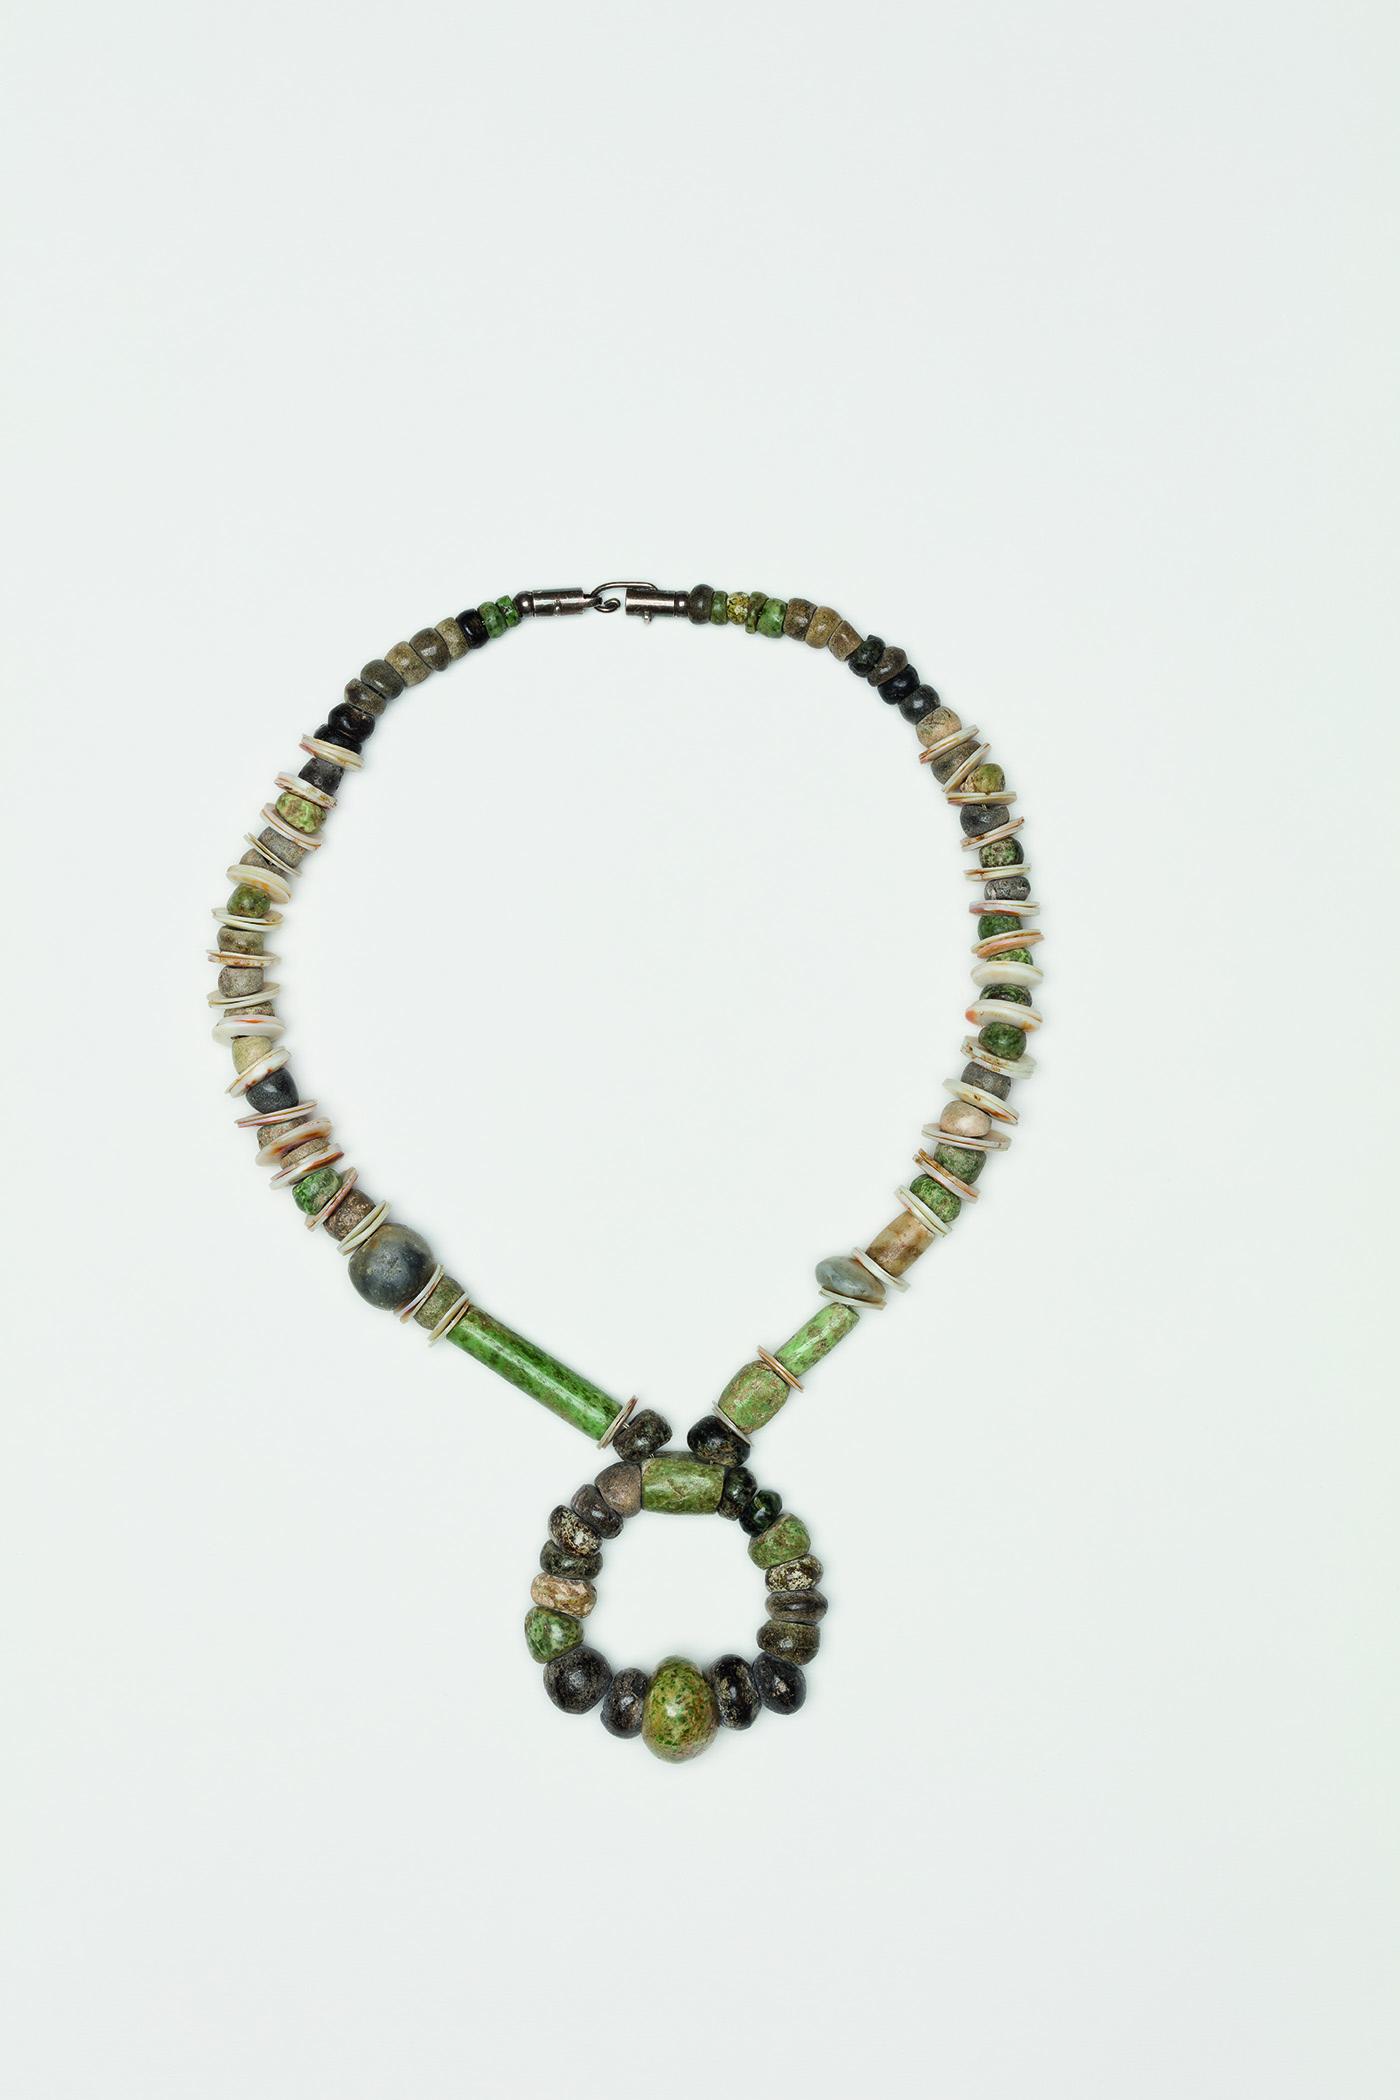 Untitled , 1985  Shells, jade, pre-Columbian beads, silver clasp  13 1/2 x 1 inches  34.29 x 2.54 cm